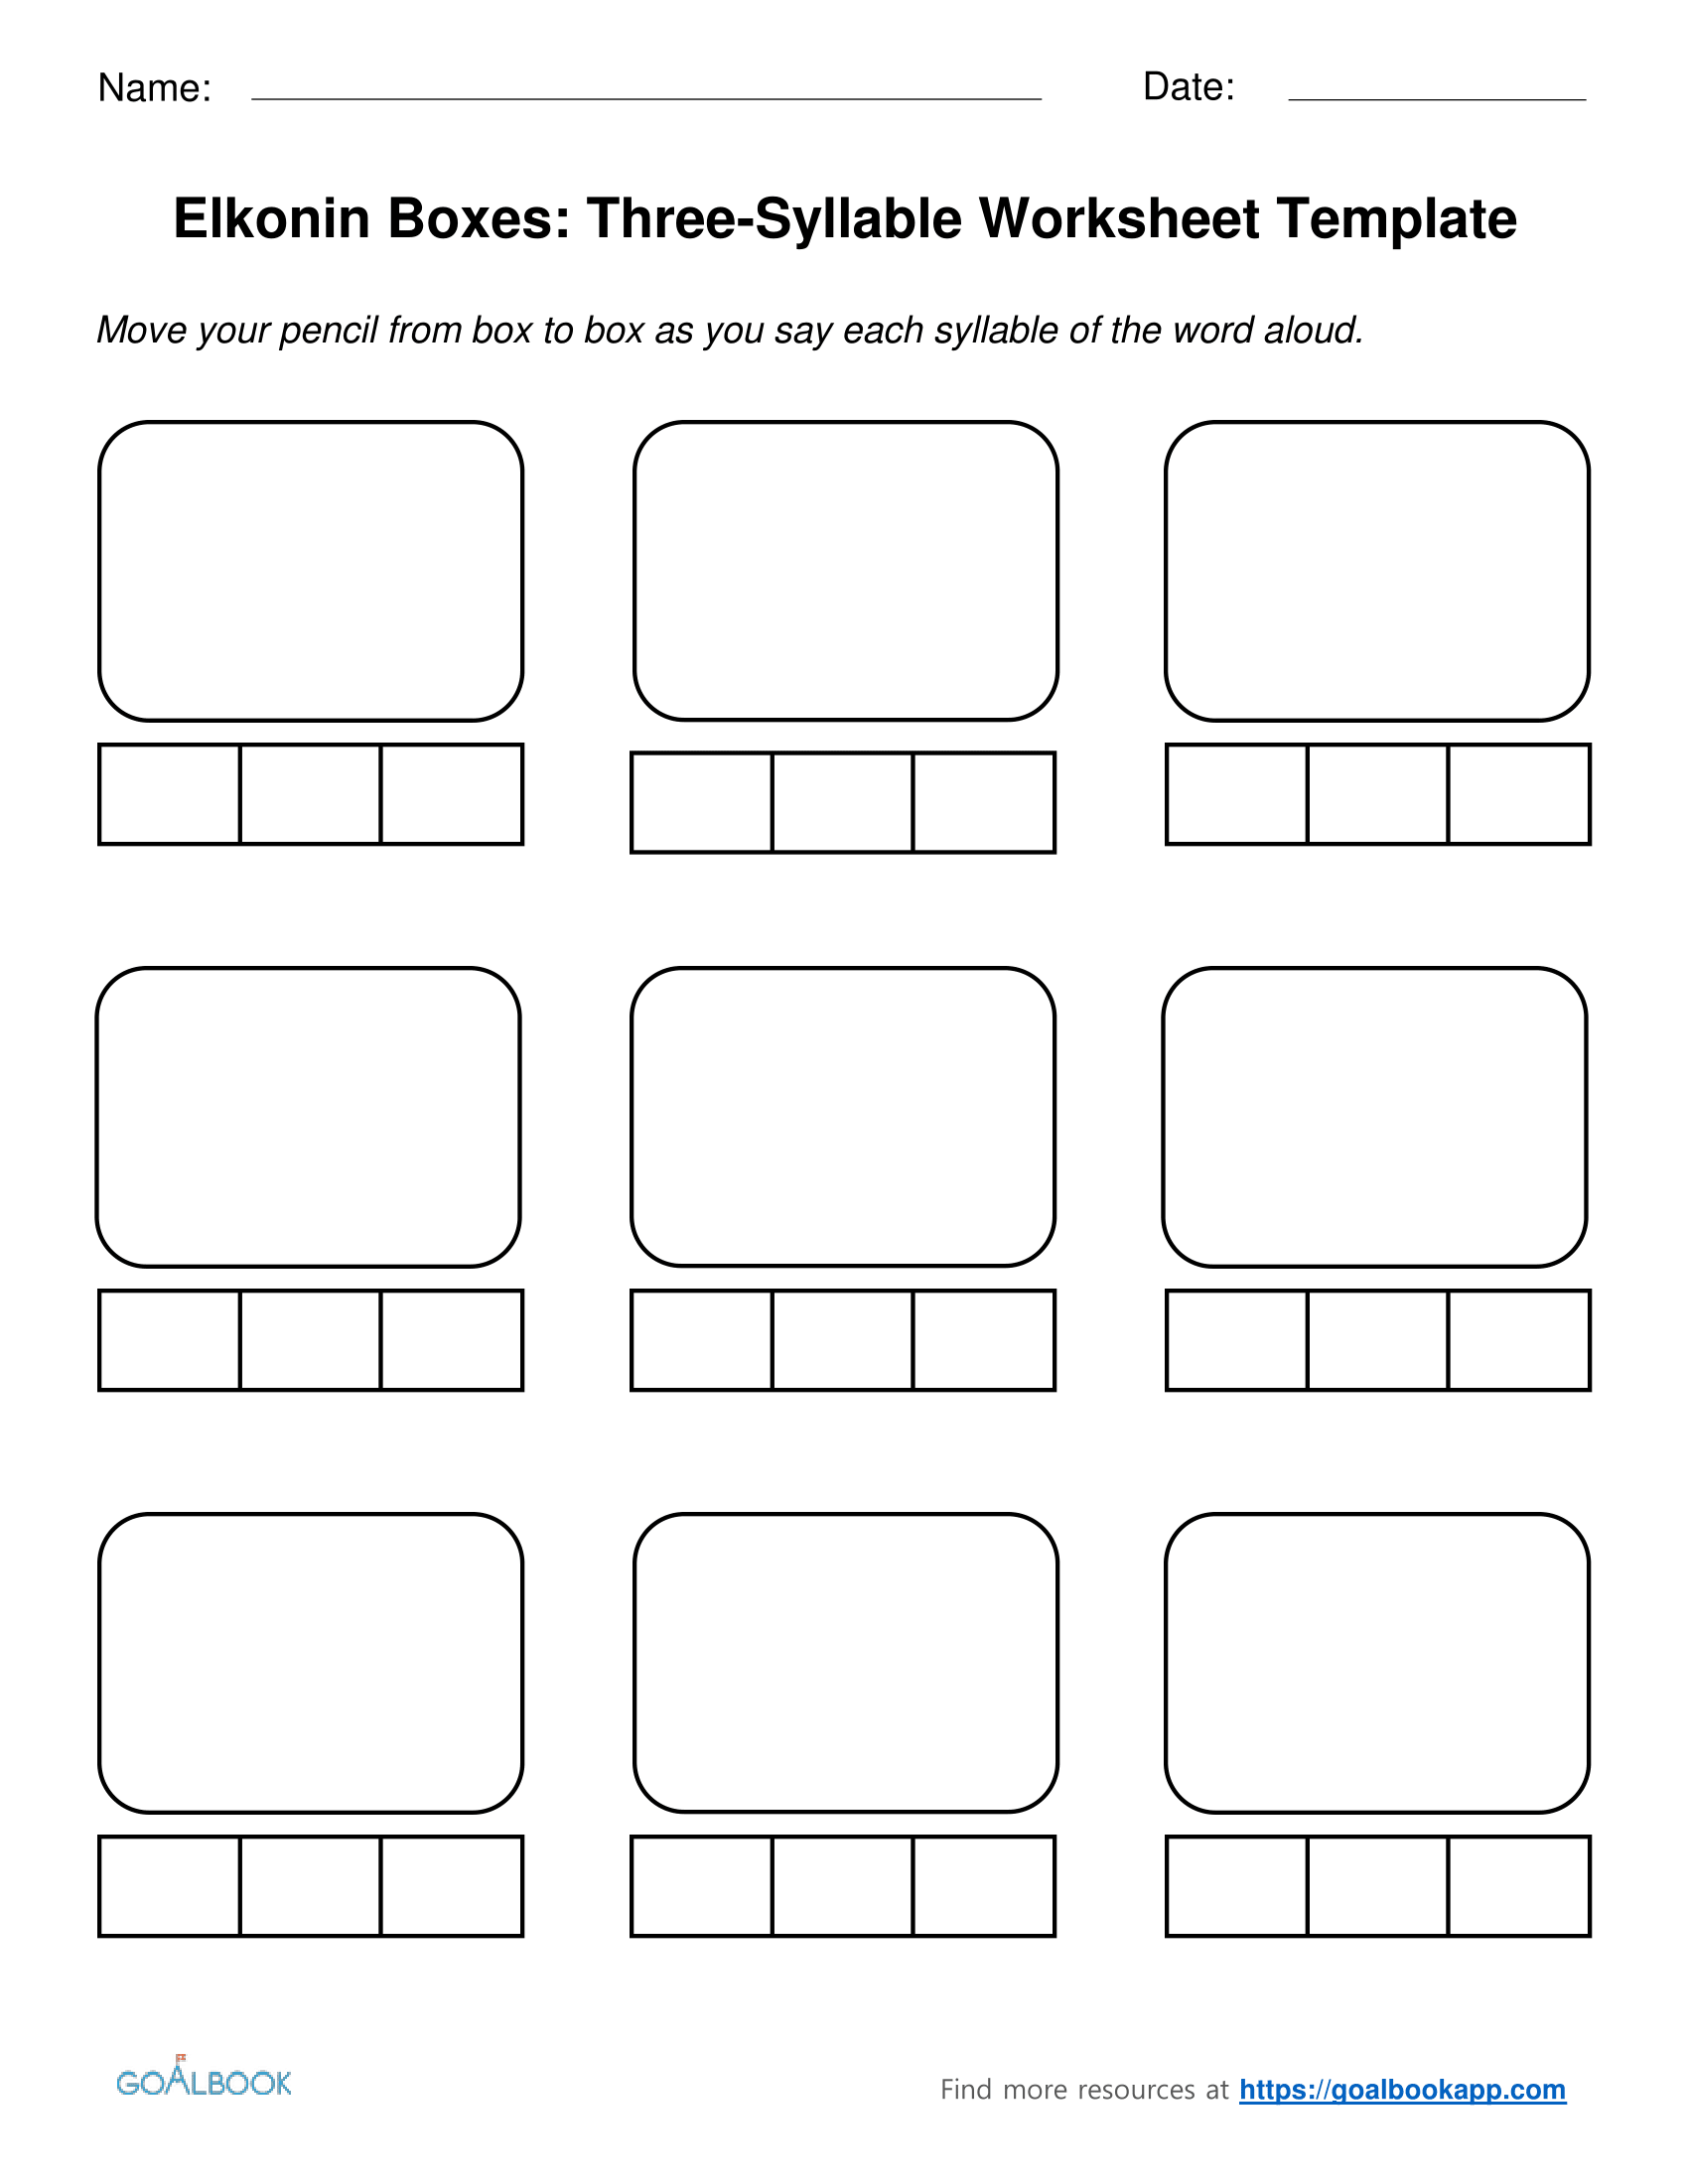 Closed Syllable Worksheet